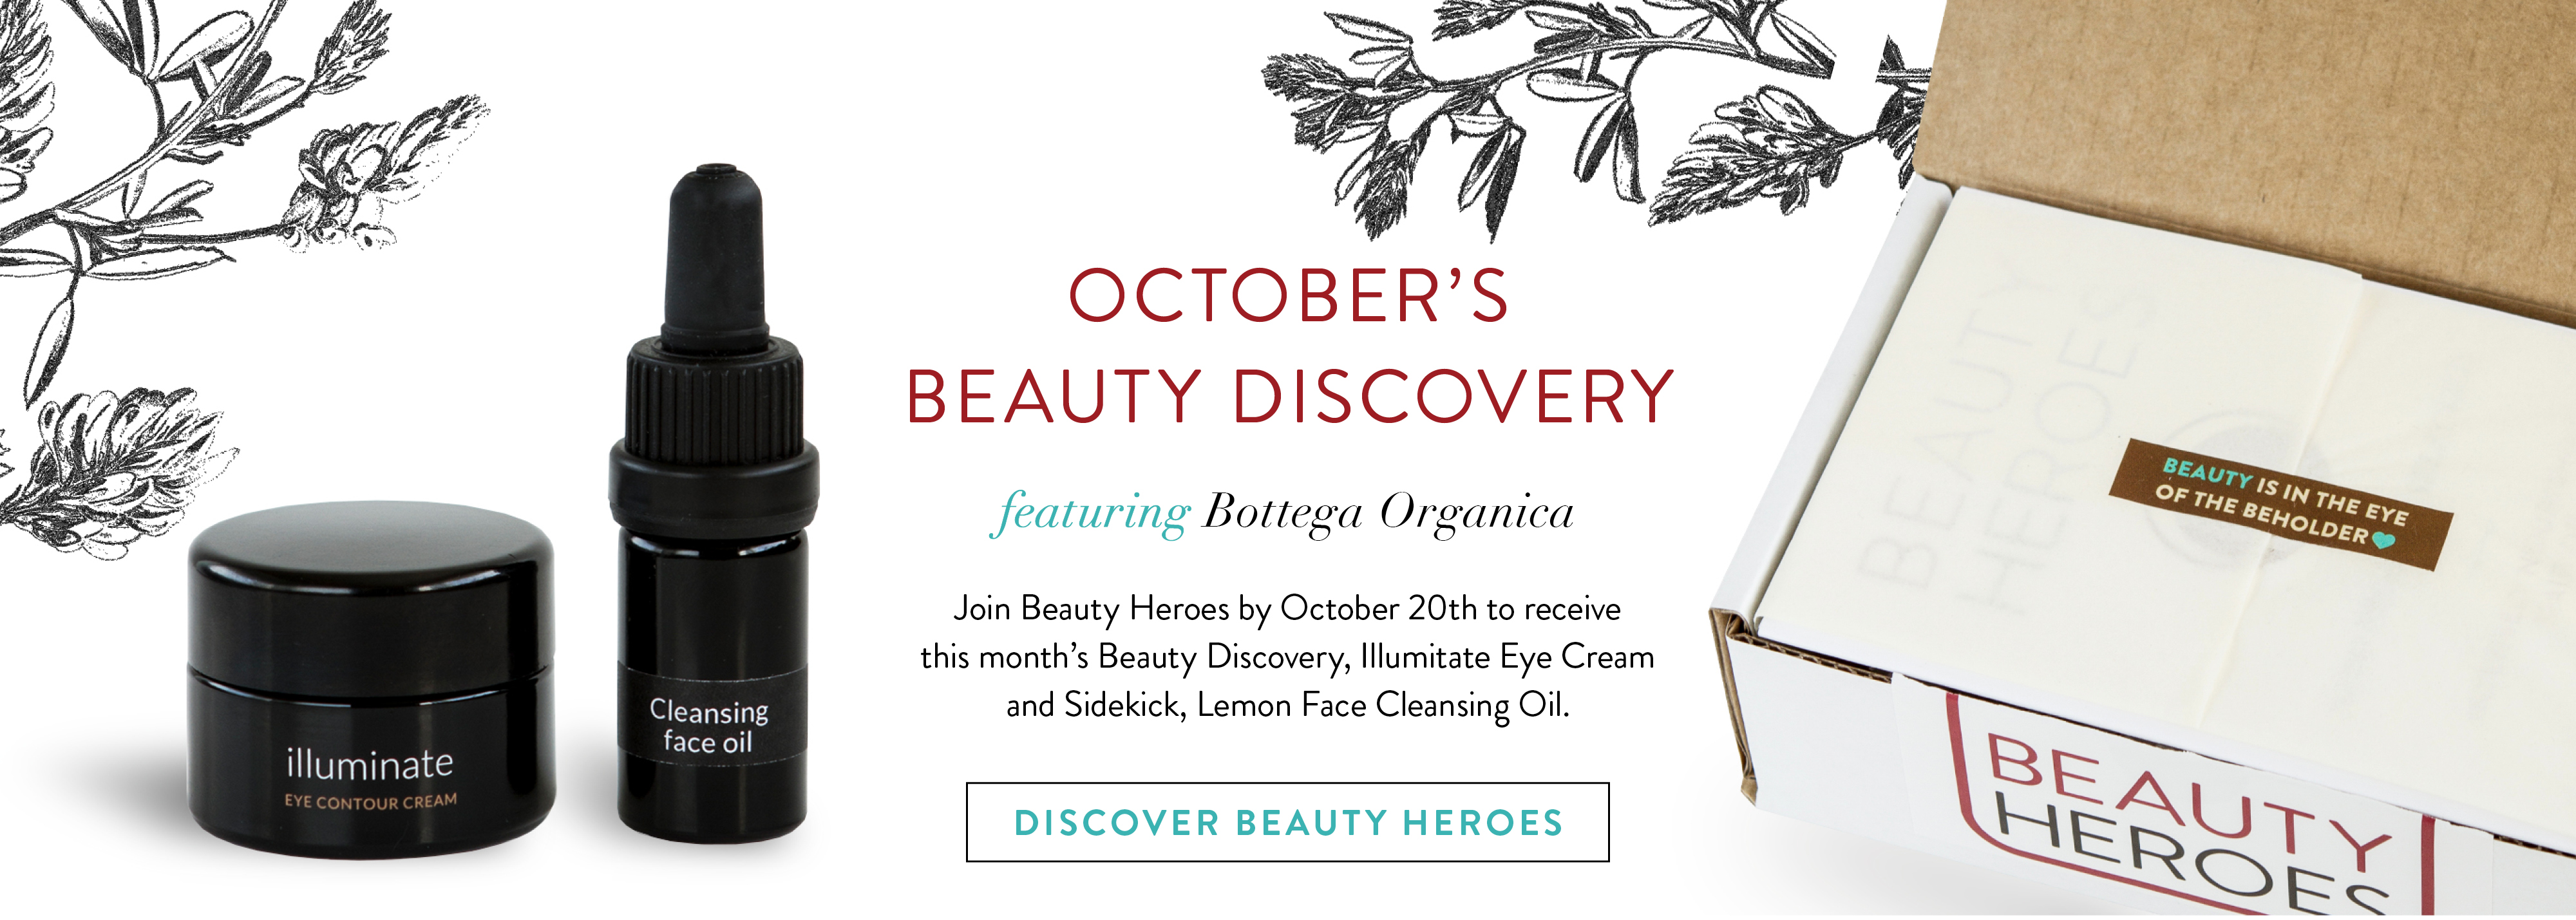 October Beauty Discovery